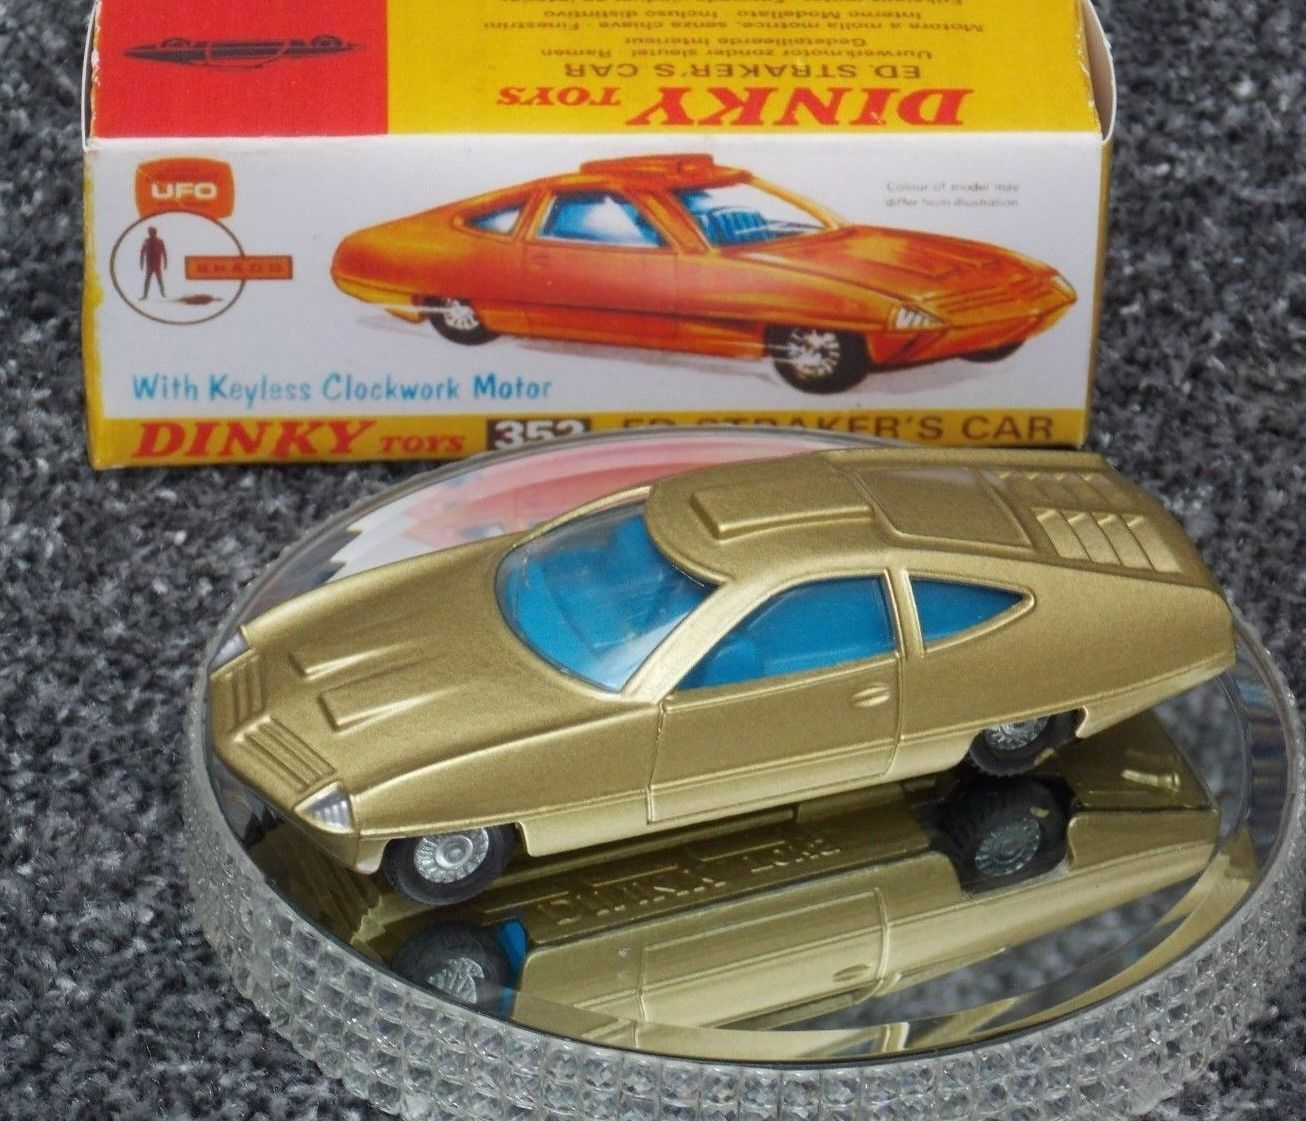 DINKY 352 ED ED ED STRAKER'S CAR FROM UFO IN 18 K gold PAINT + REPRODUCTION BOX 6a7cdc